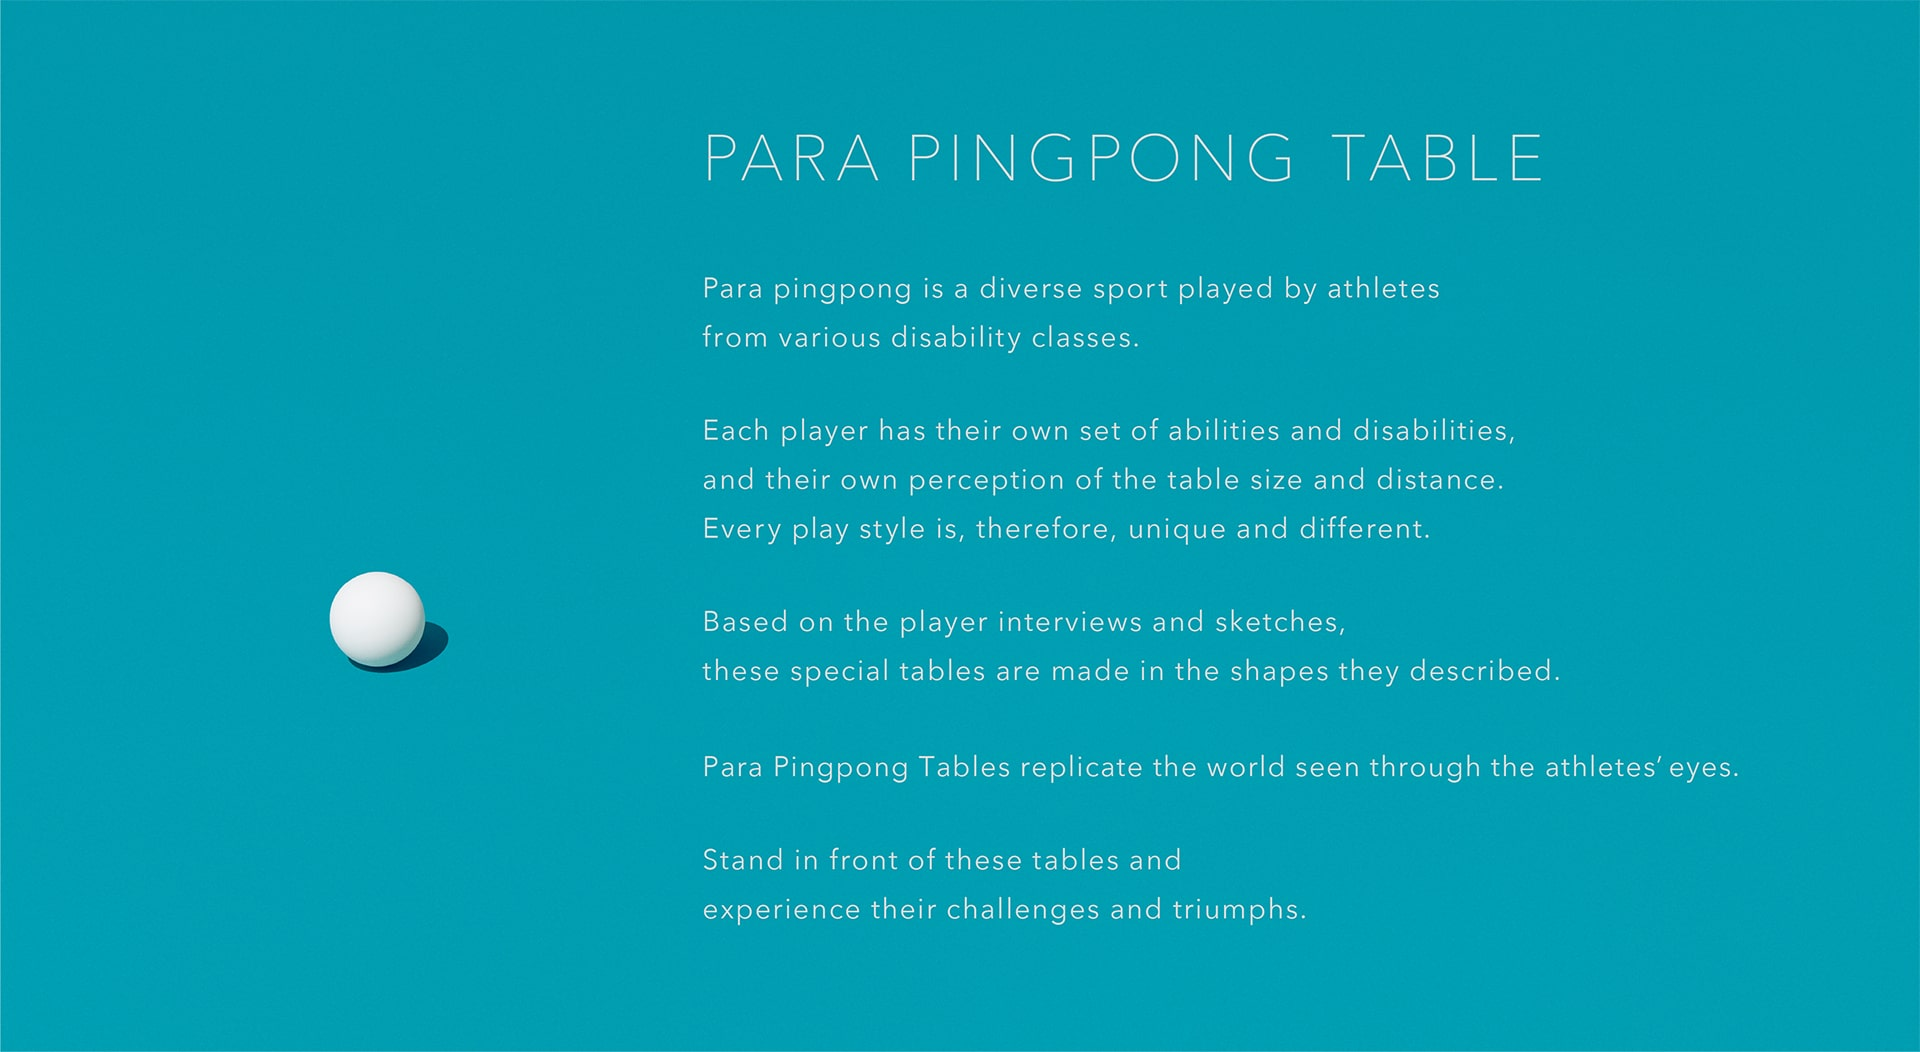 PARA PINGPONG TABLE Para pingpong is a diverse sport played by athletes from various disability classes. Each player has their own set of abilities and disabilities, and their own perception of the table size and distance. Every play style is, therefore, unique and different. Based on the player interviews and sketches, these special tables are made in the shapes they described. These tables replicate the world seen through the athletes' eyes.Stand in front of these tables and catch a glimpse of their challenges and triumphs.